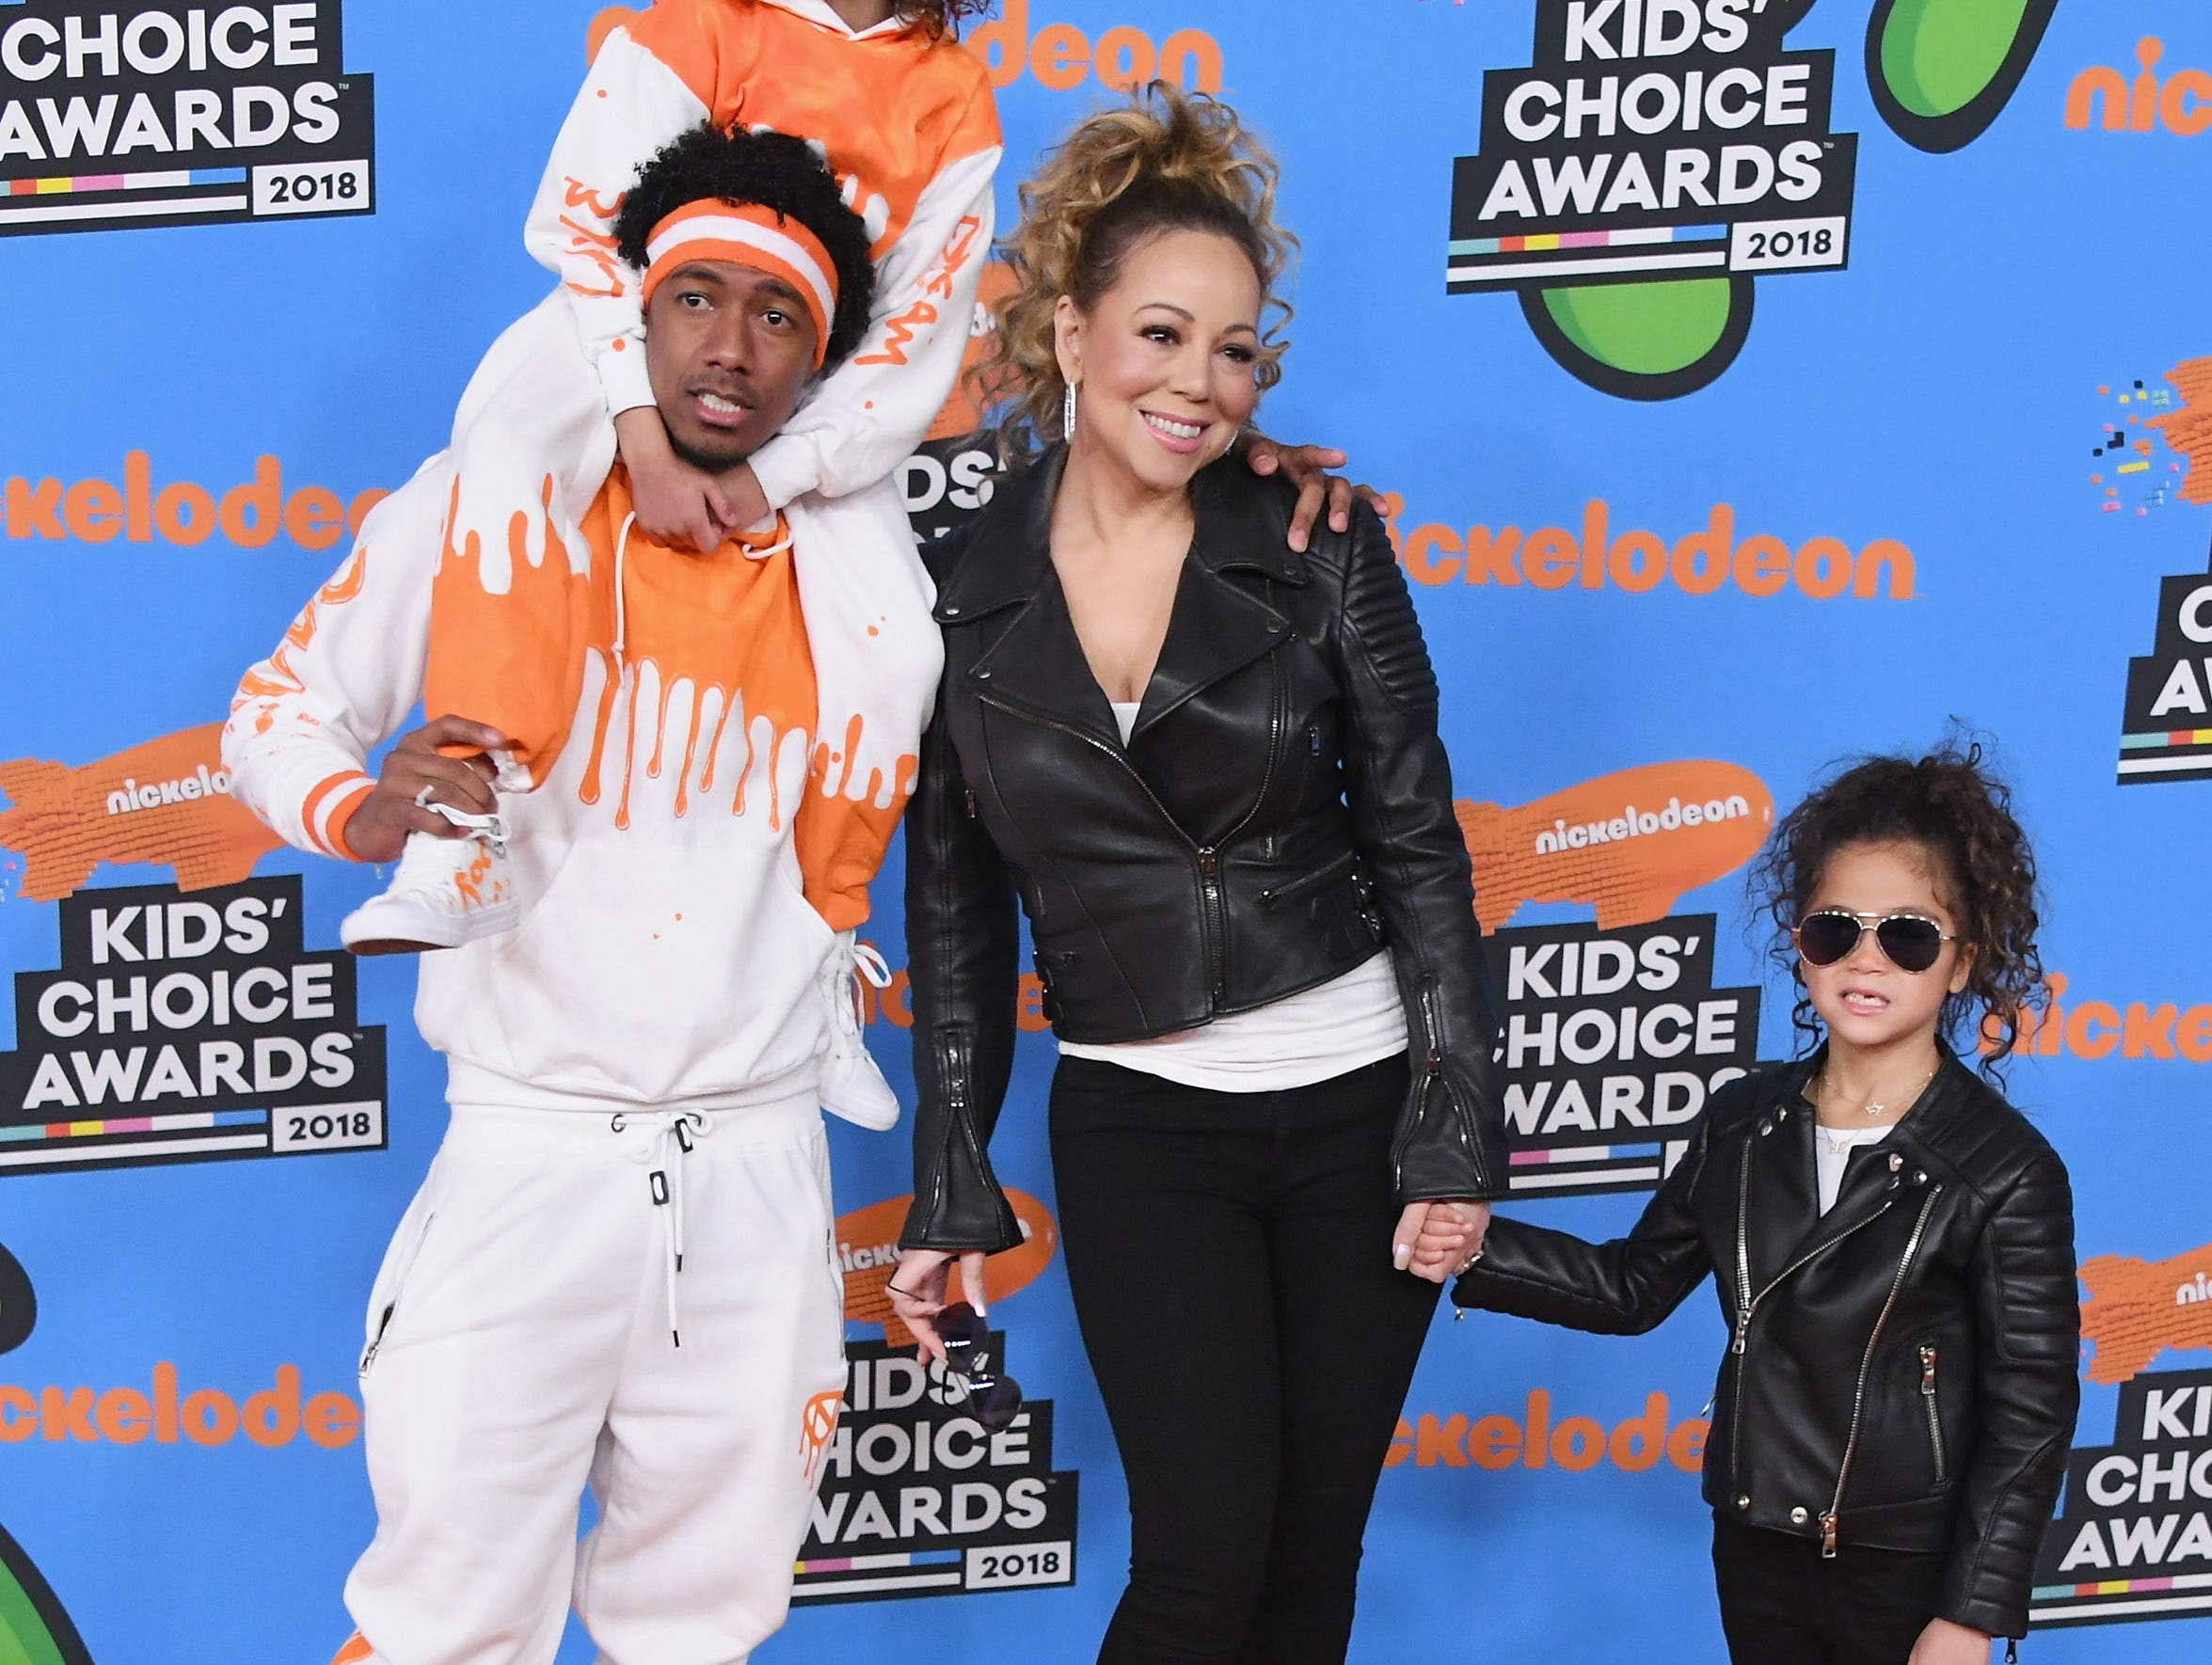 Nickelodeon's Kids' Choice Awards are all about the kids, including those of celebrities, who like to bring their kids along for a night of fun. Here, Nick Cannon and Mariah Carey pose with their kids Moroccan and Monroe Cannon in 2018. Check out a few more kids who have walked the carpet with their parents.